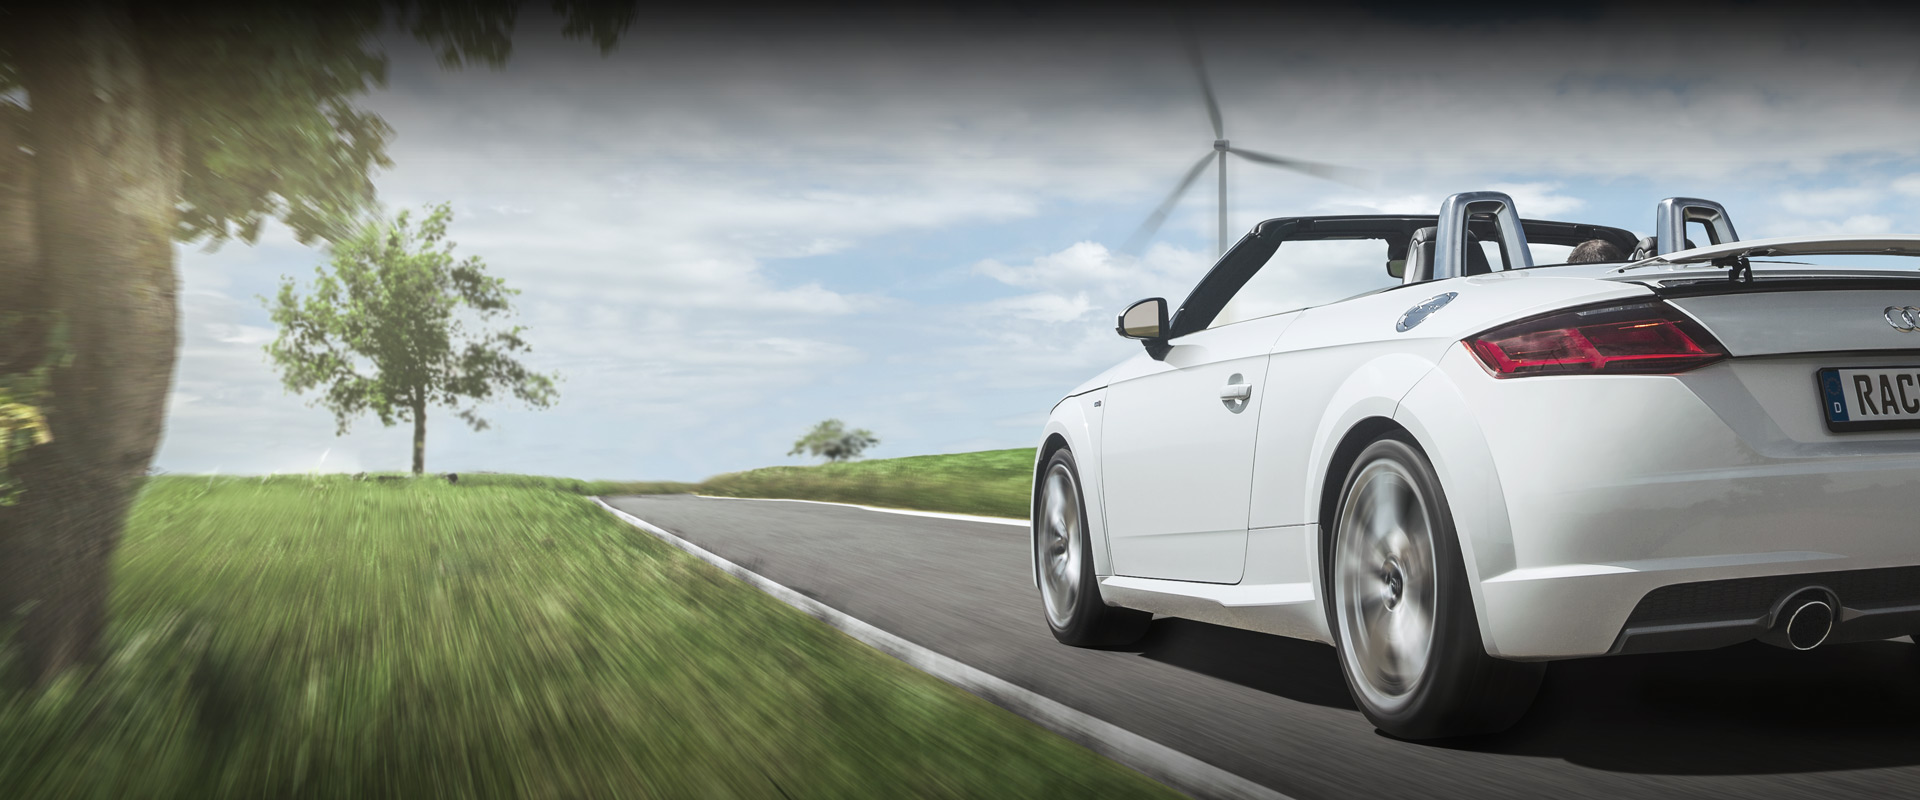 Eco-Tuning for better MPG